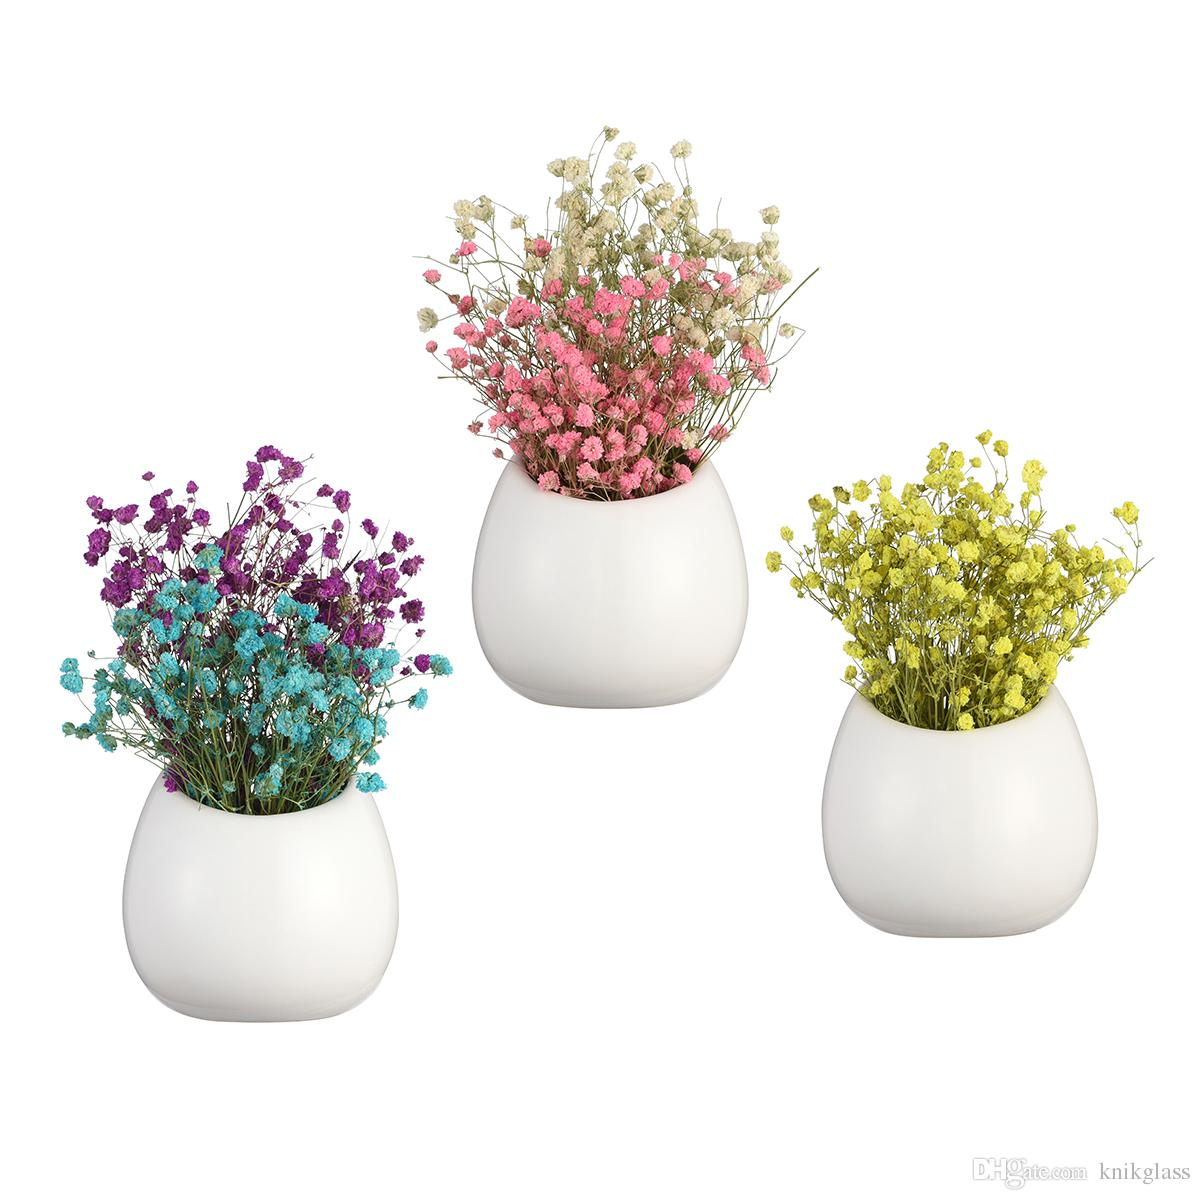 Glass wall vase wholesale online glass wall vase wholesale for sale pack of 3 white pots ceramic wall vase wall hanging air plant succulent planters holders art wall garden decor reviewsmspy